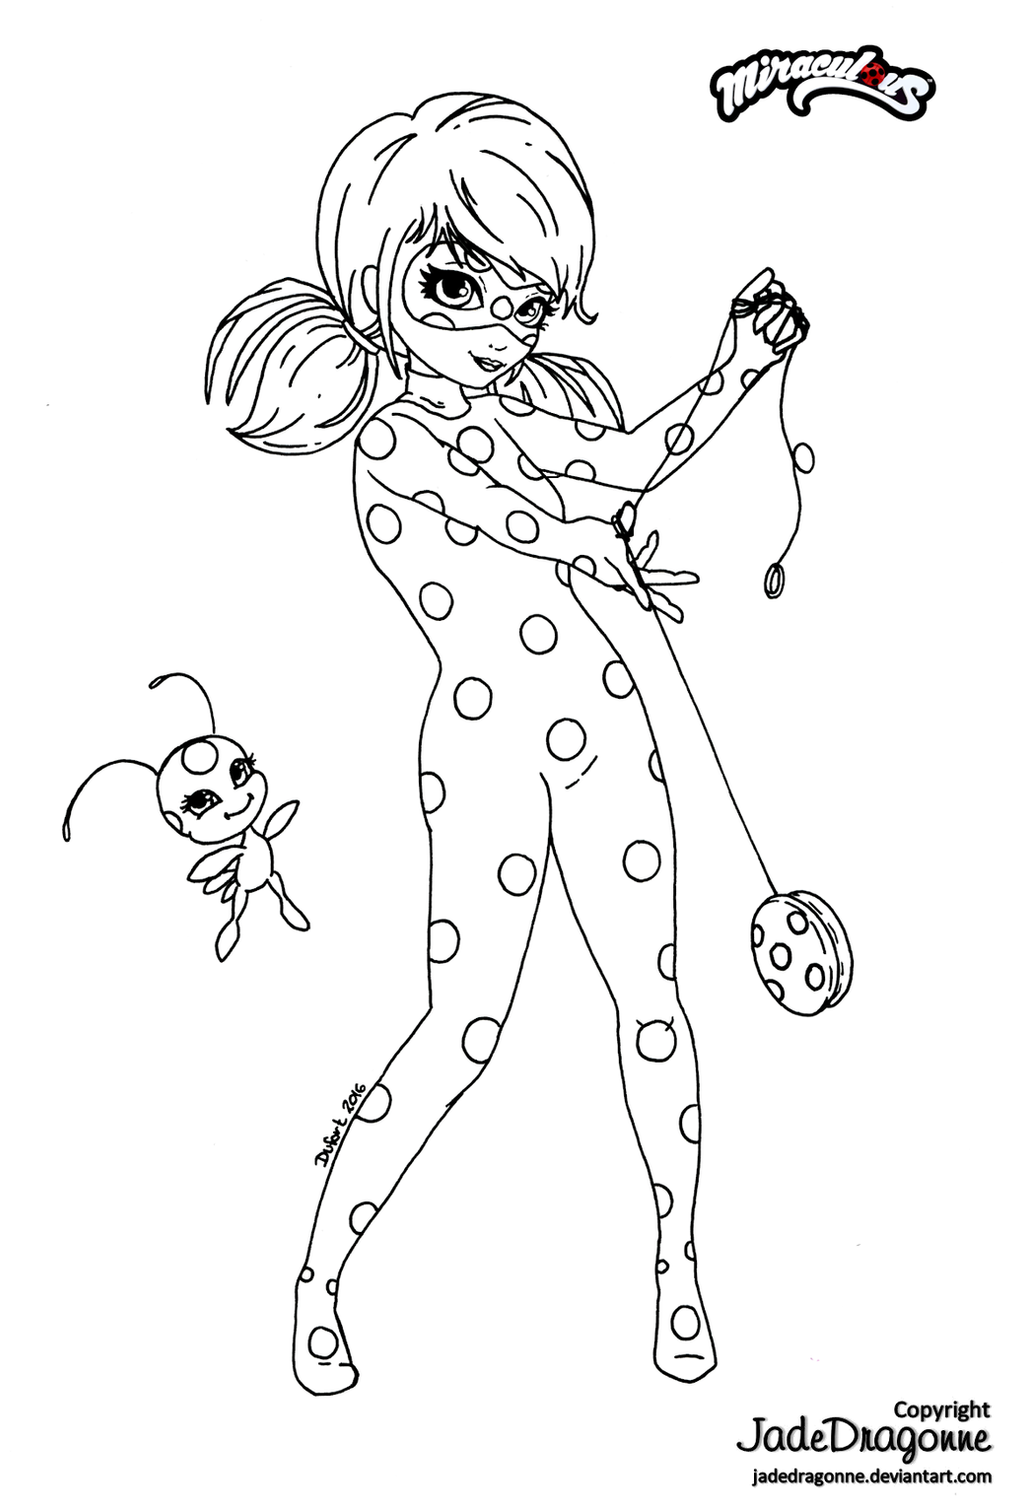 miraculous coloring pages   Miraculous Ladybug - Lineart by JadeDragonne on DeviantArt